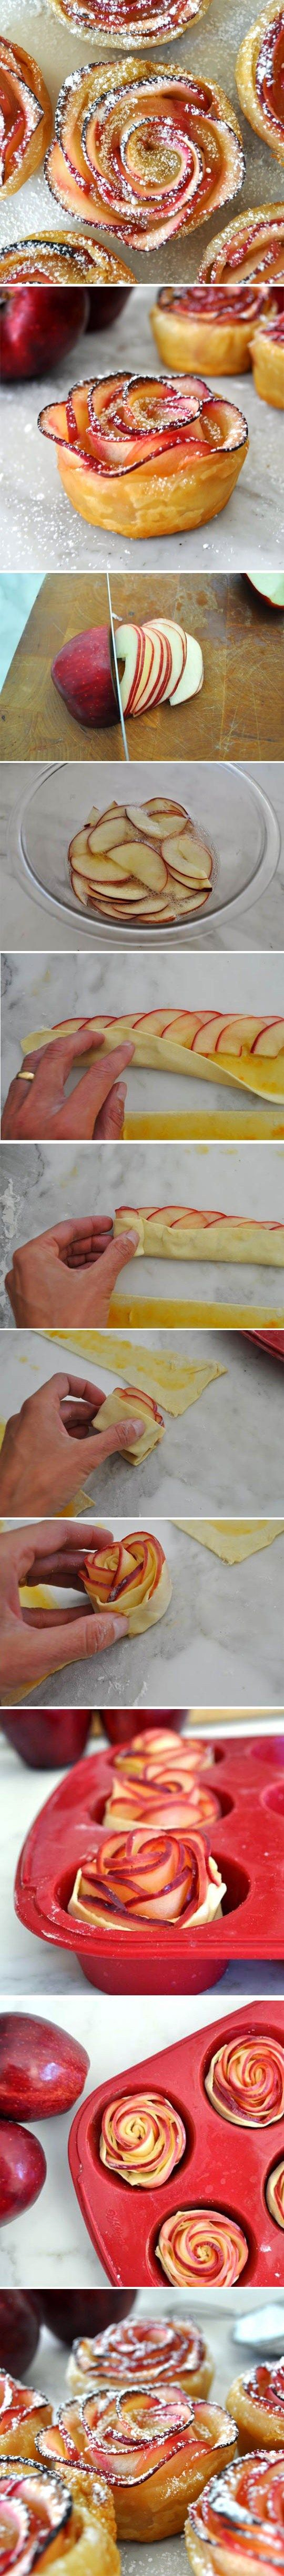 Ingredients: to make 6 roses 1 frozen puff pastry sheet, thawed 2 red organic apples (I used red delicious) half lemon, juice 1 tablespoon of flour, to sprinkle the counter 3 tablespoons of apricot pr (Baking Powder)